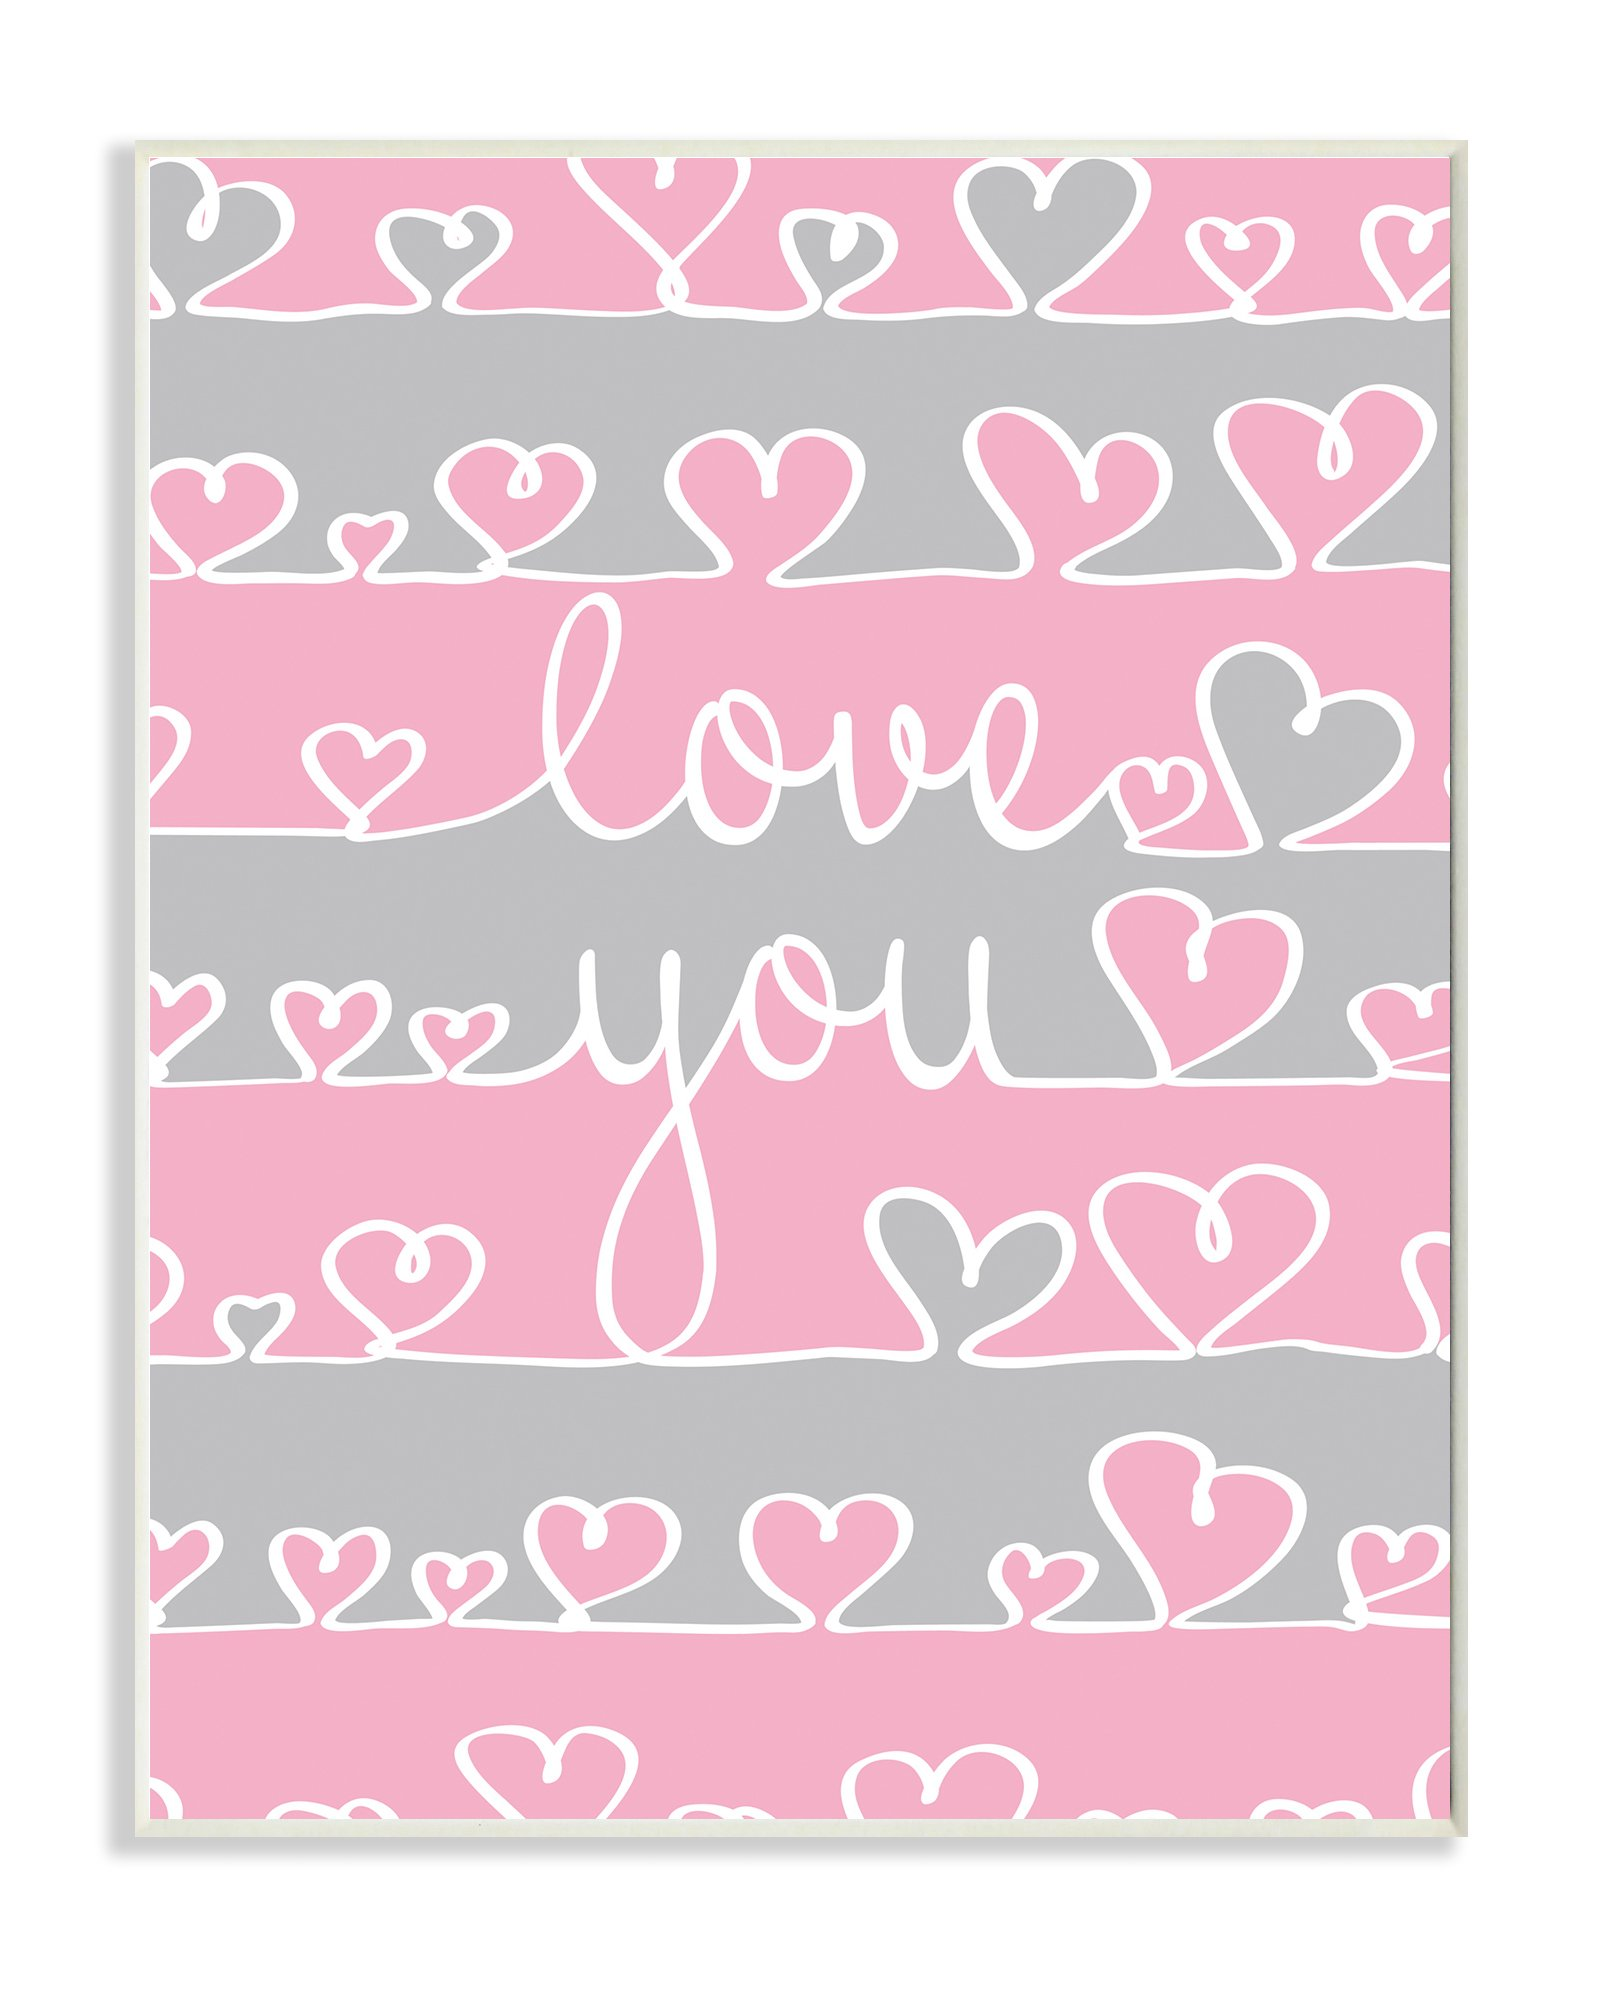 The Kids Room by Stupell Love You Pink And Gray Hearts Textual Art Wall Plaque, 11 x 0.5 x 15, Proudly Made in USA